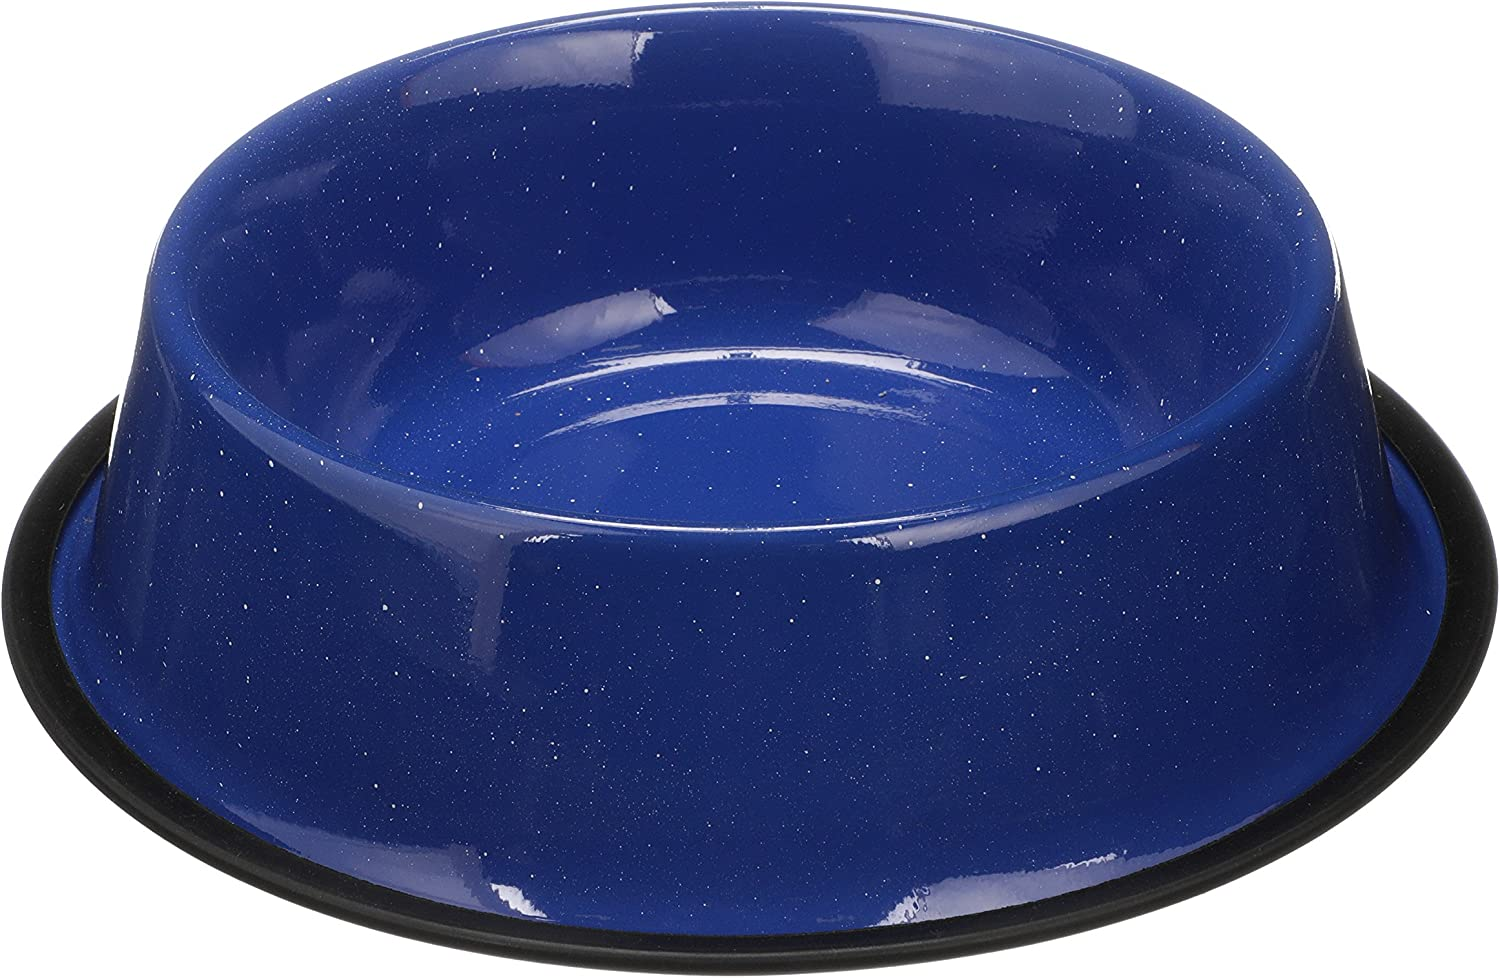 Neater Pet Brands - Camping Style Pet Bowl - Enamel Ware Blue Black Granite Colors - Dog Cat No Tip Skid Bowls